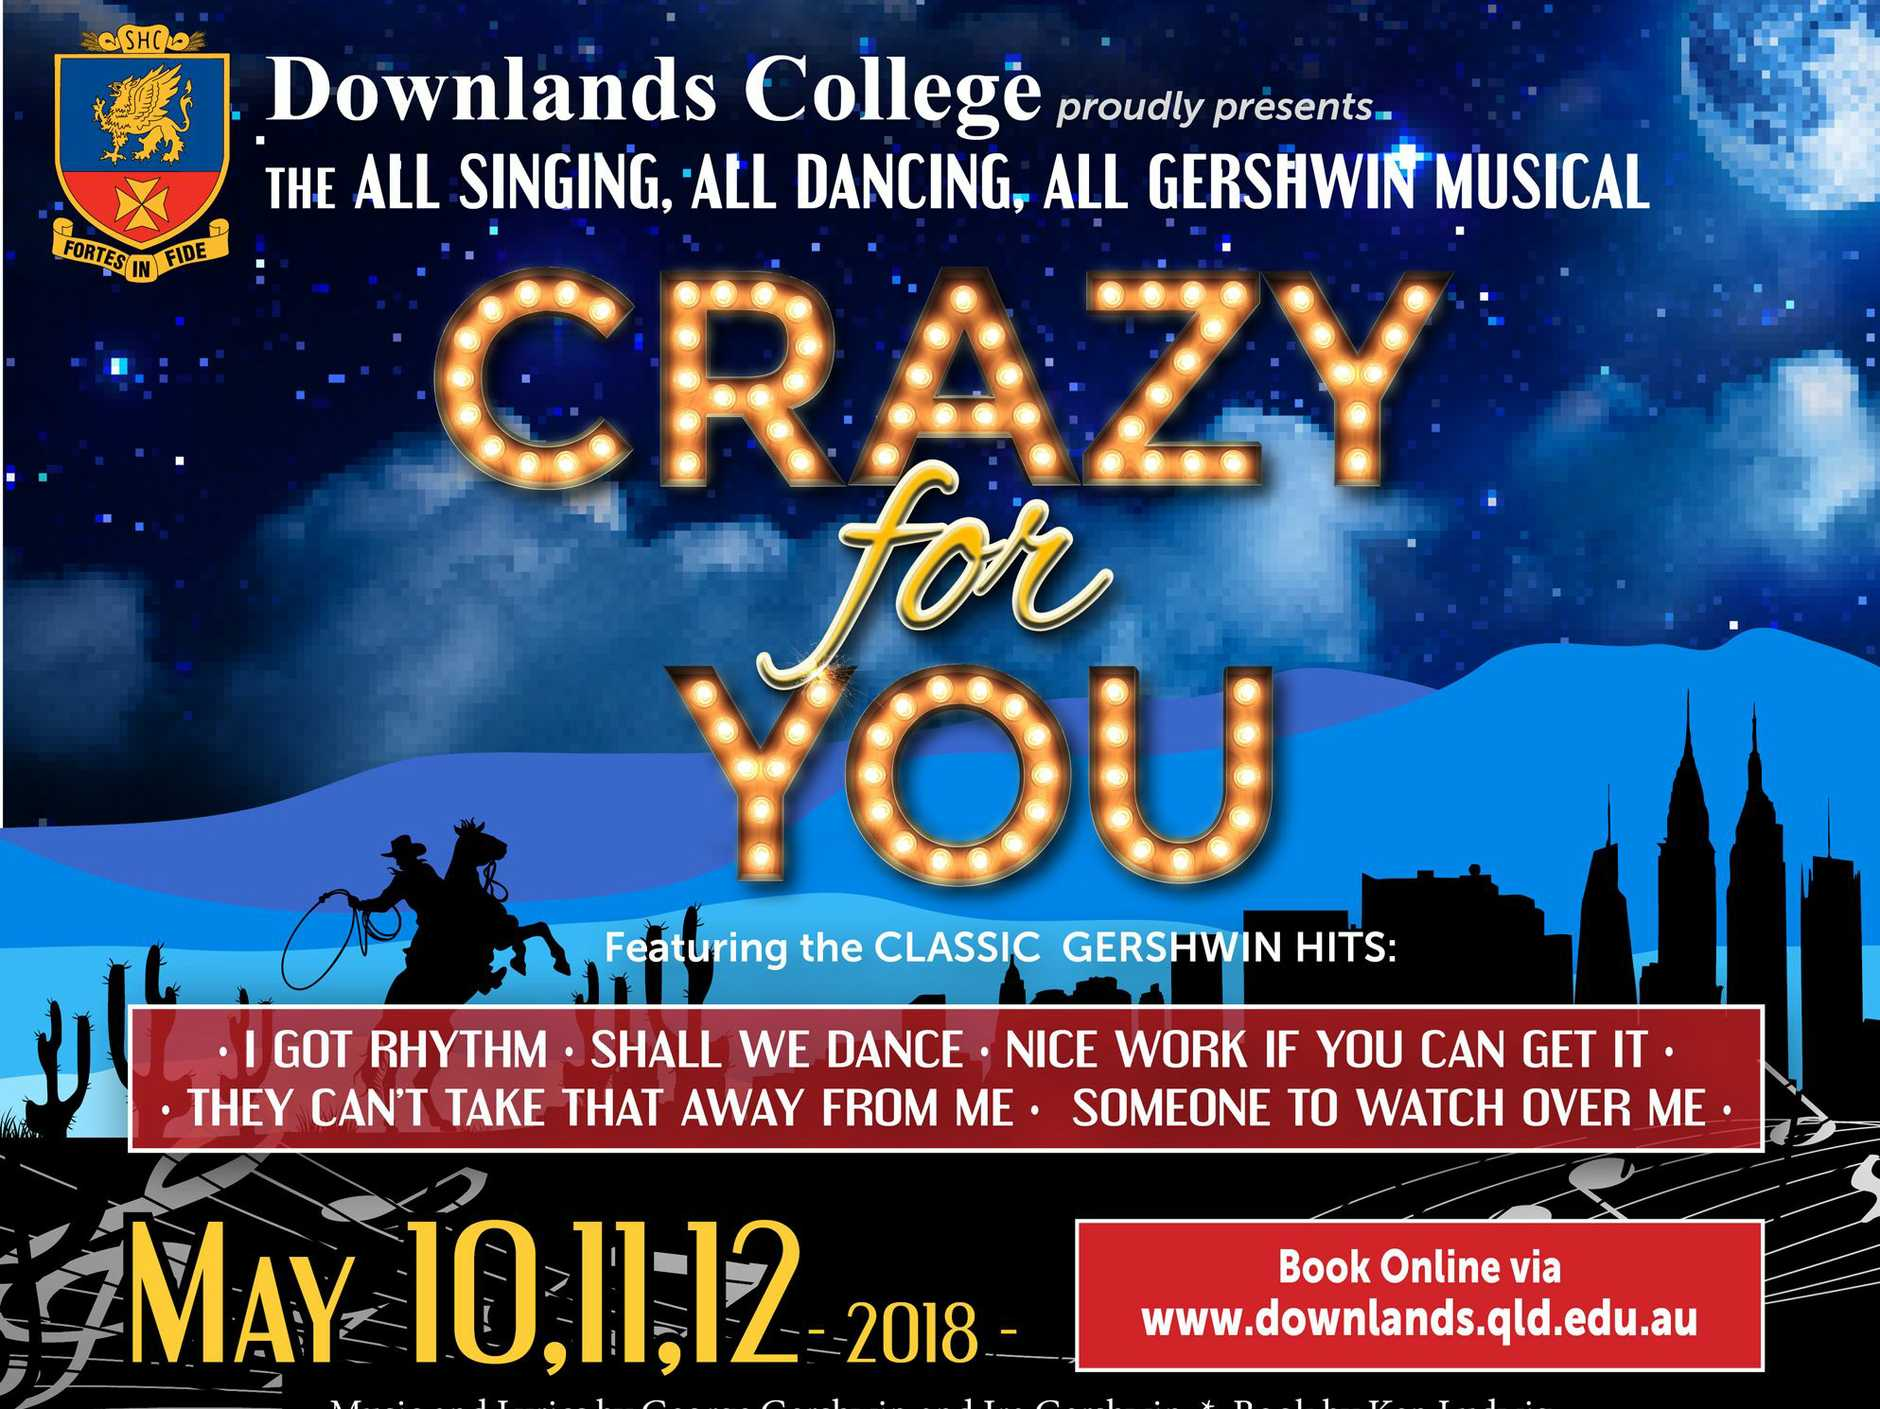 Downlands Brings Beloved Gershwin Musical to Toowoomba